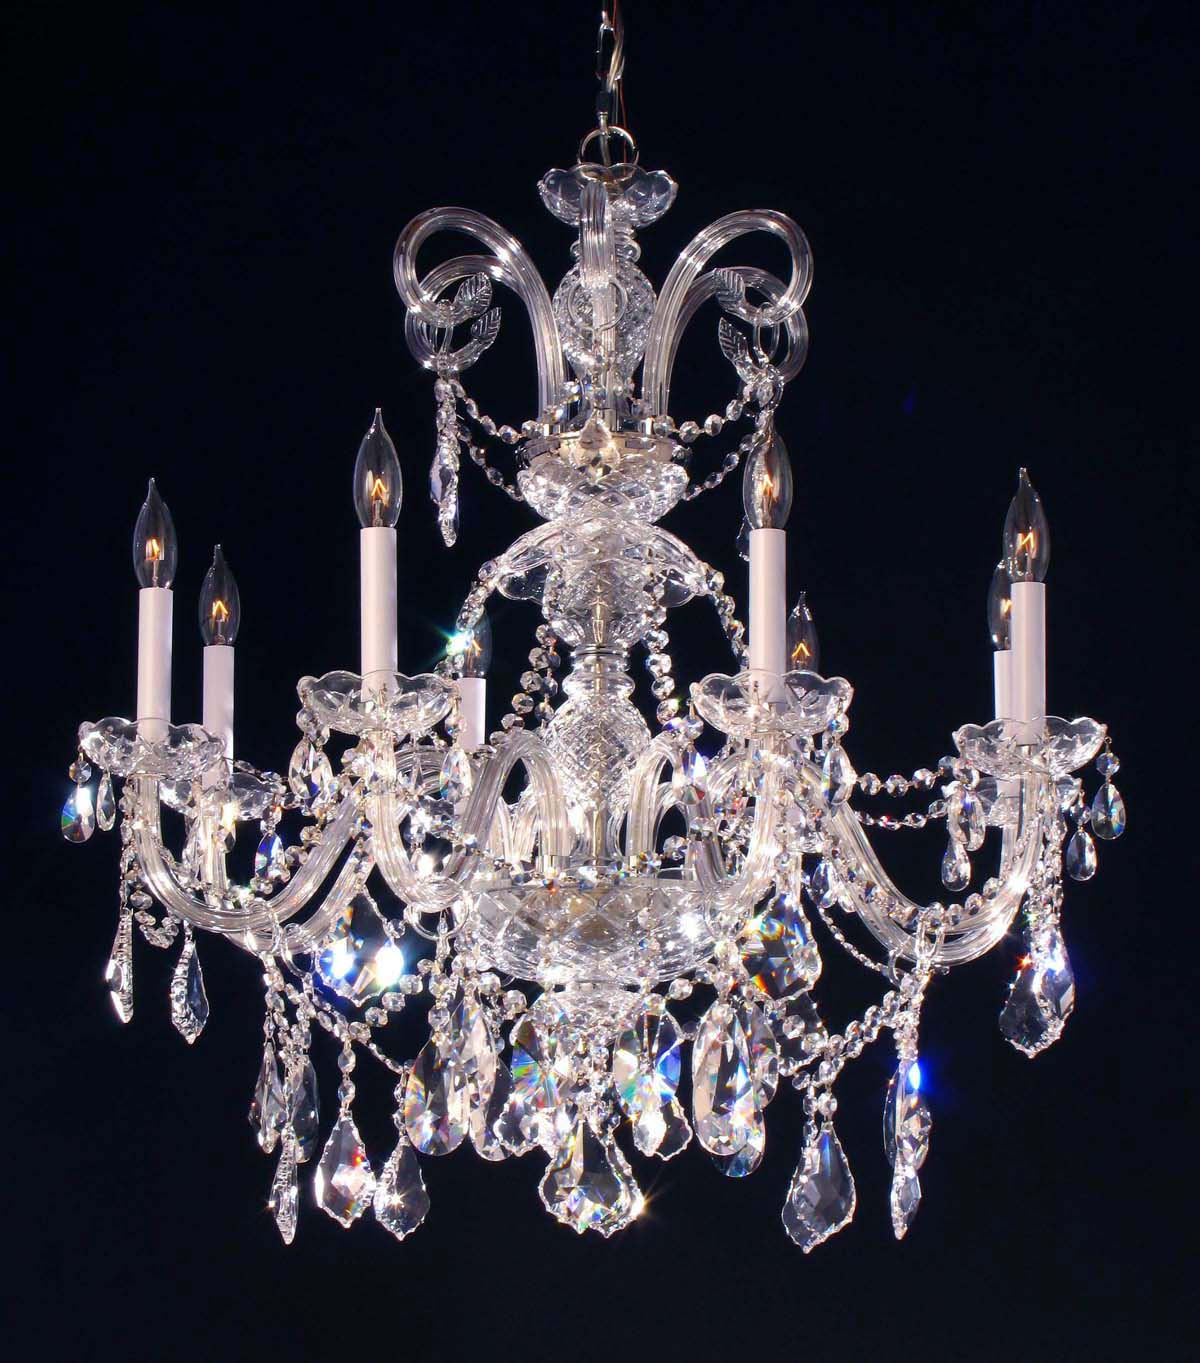 Chandelier Crystals Replacements Five Replacement Chandelier Hanging Crystals For Replacement